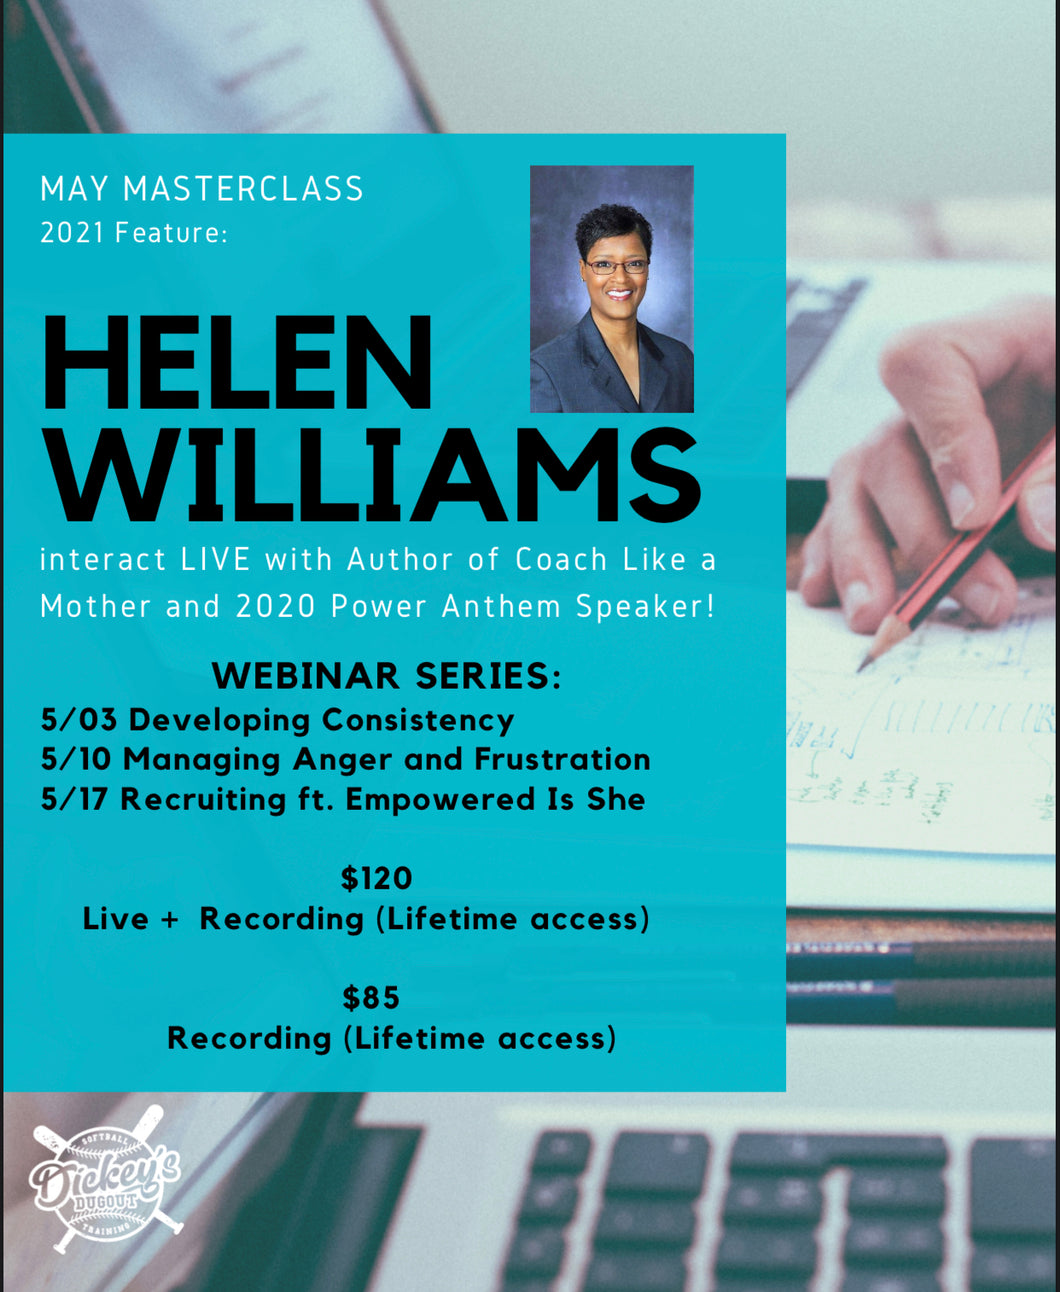 MAY MASTERCLASS (Live + Lifetime Access)